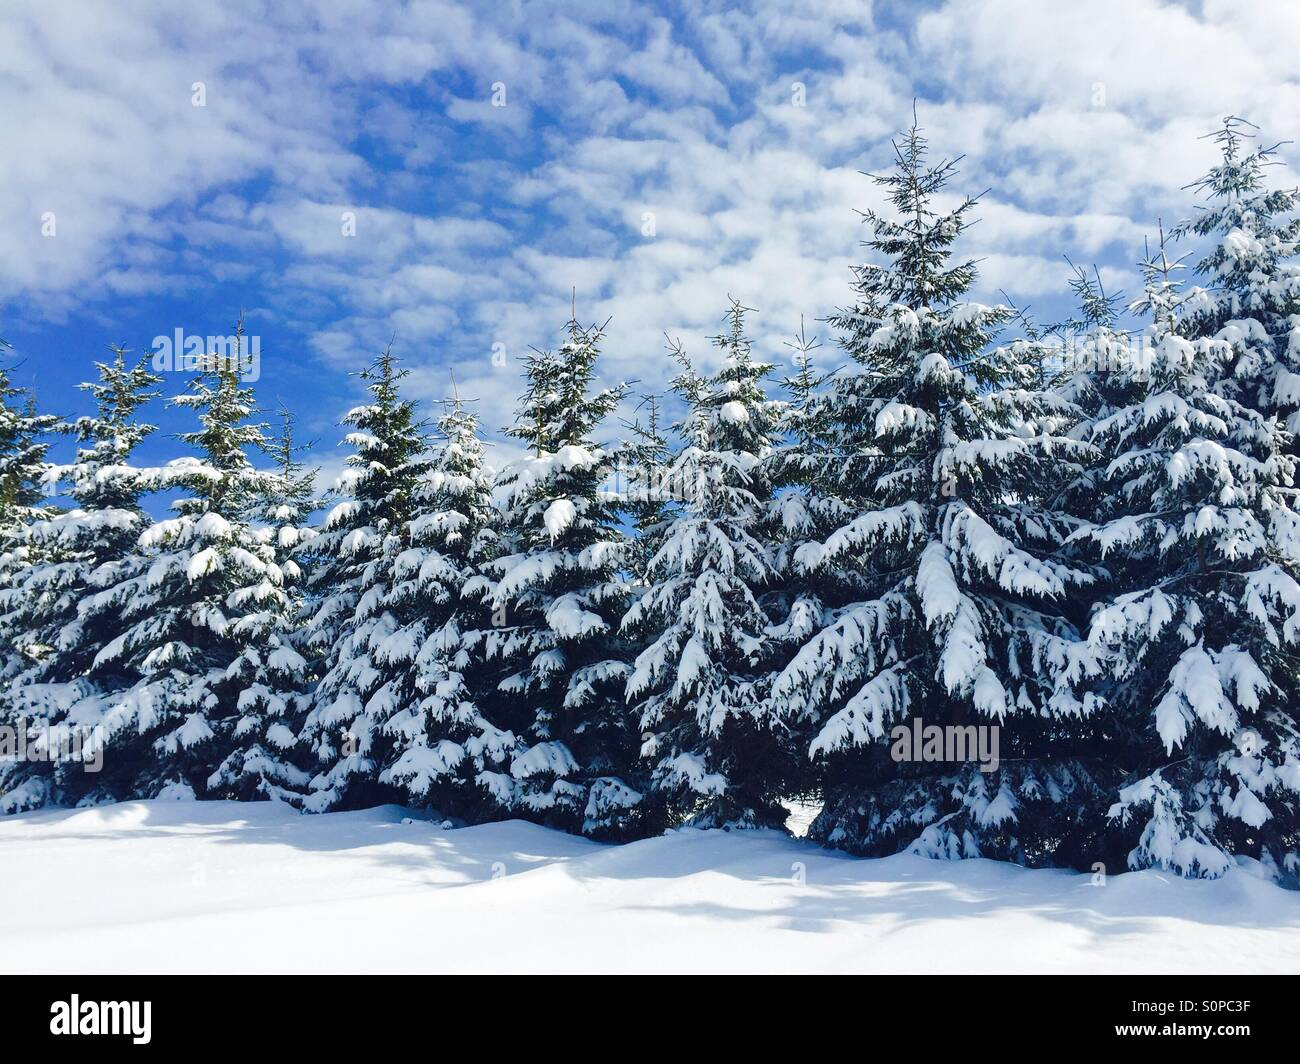 Pine cone trees stock photos pine cone trees stock - Images of pine trees in snow ...